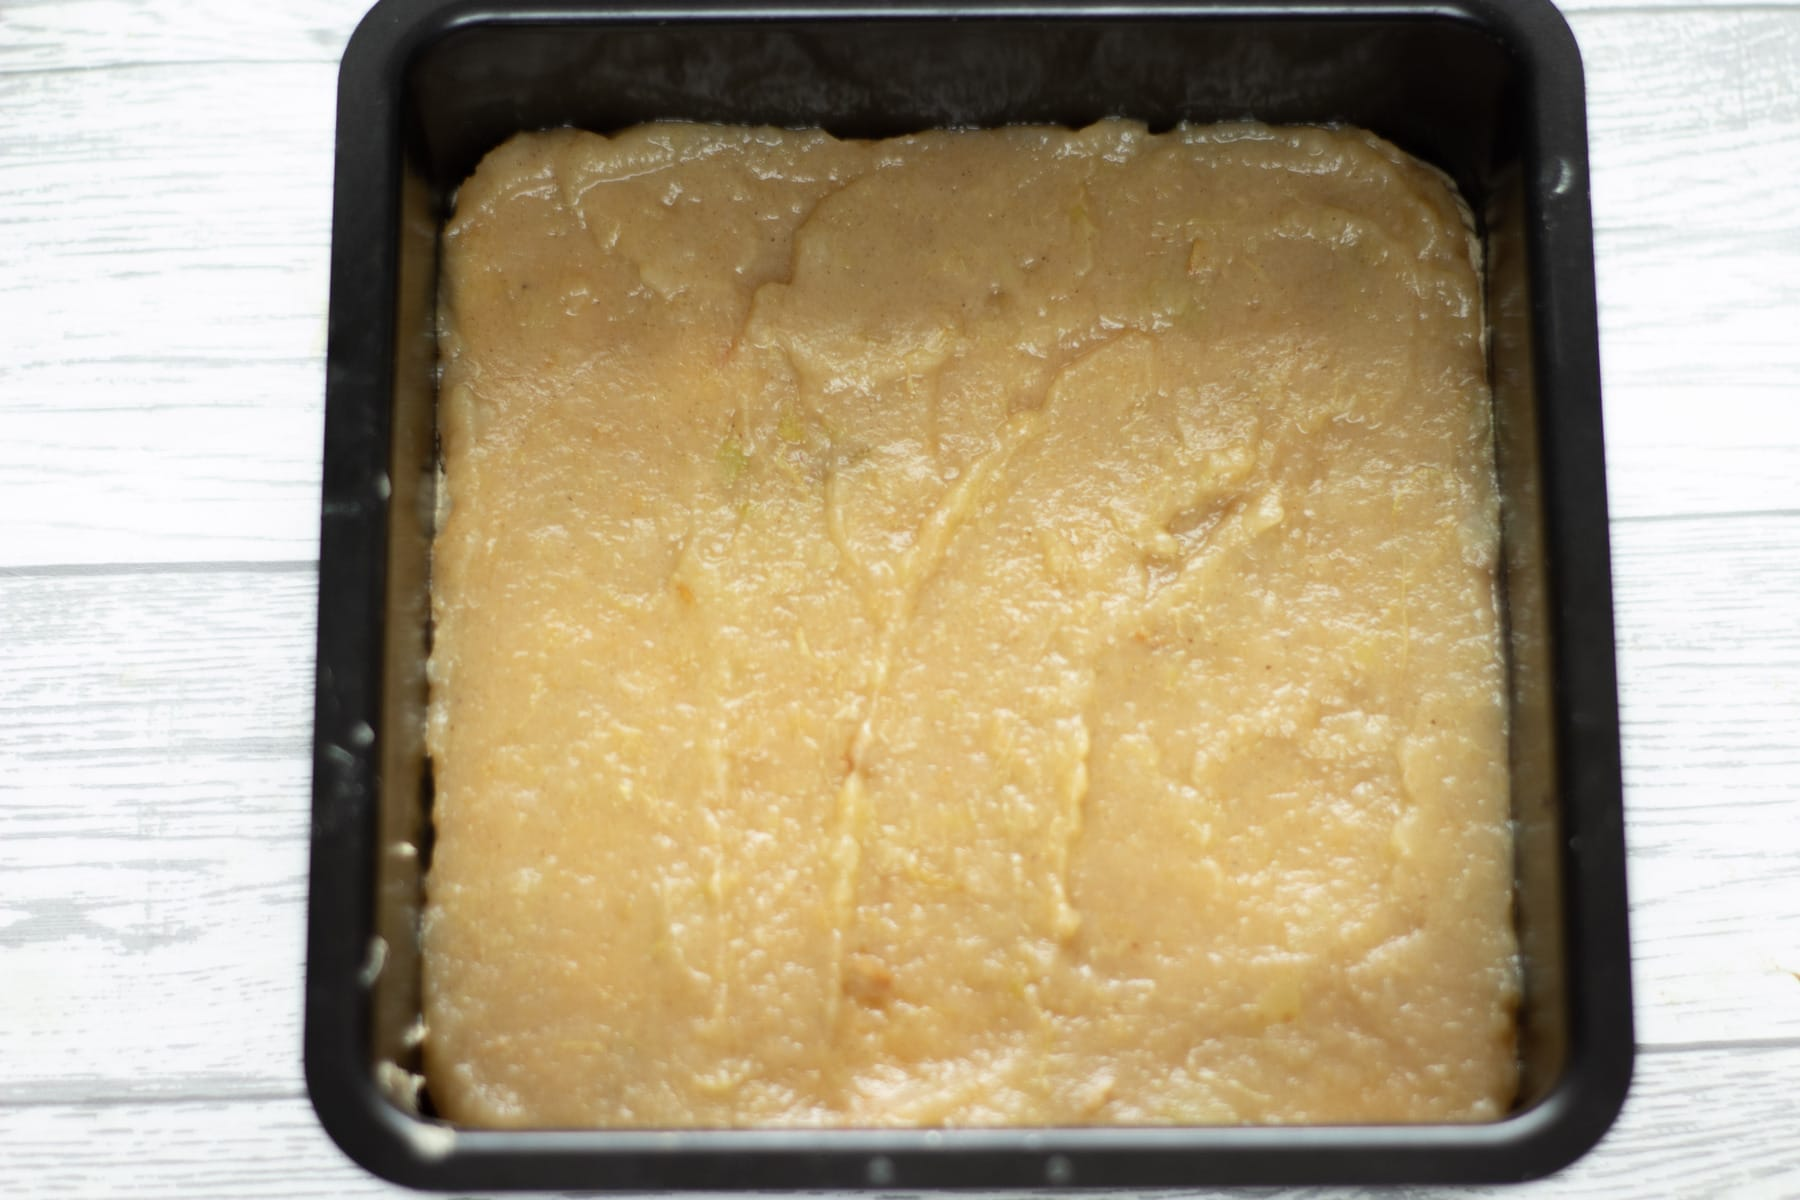 stewed apples spread on a layer of sponge in a cake tin